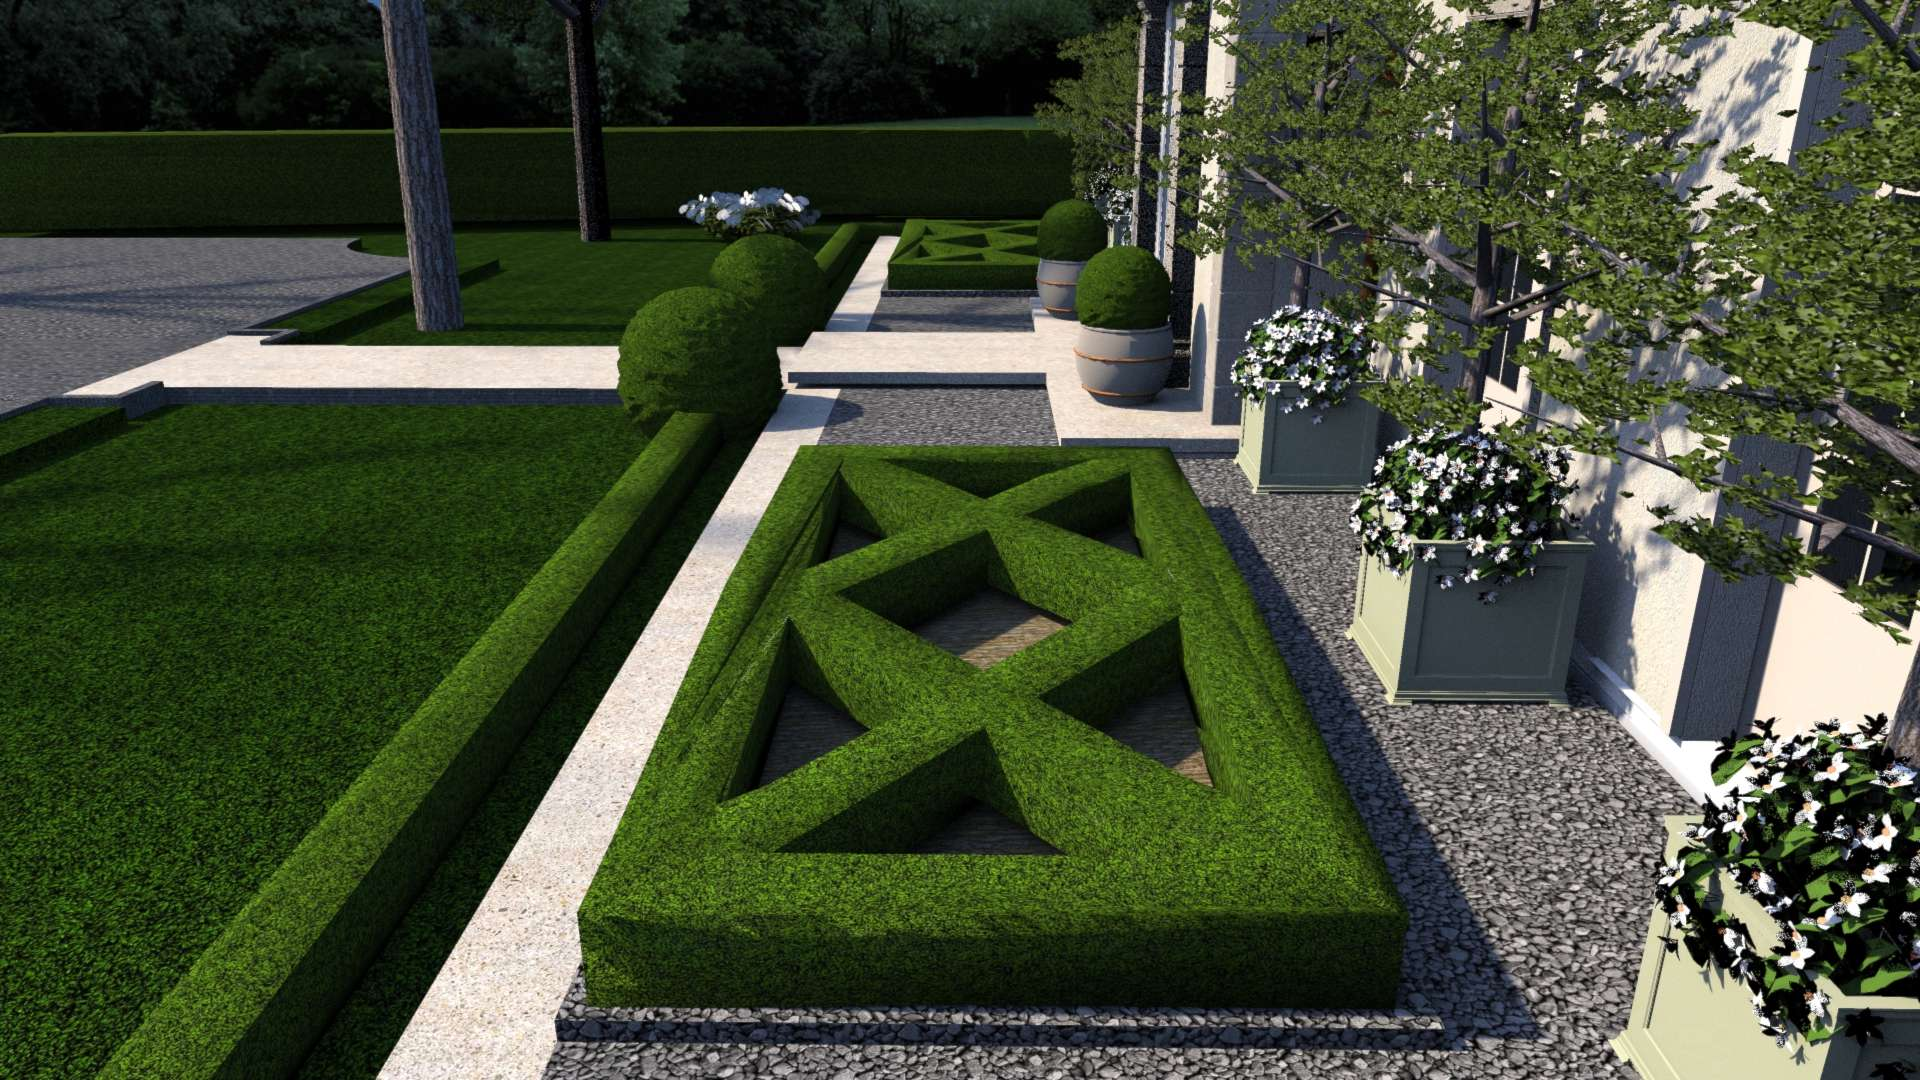 A boxwood parterre garden flanks each side of the entry to bring symmetry to the front of the house.